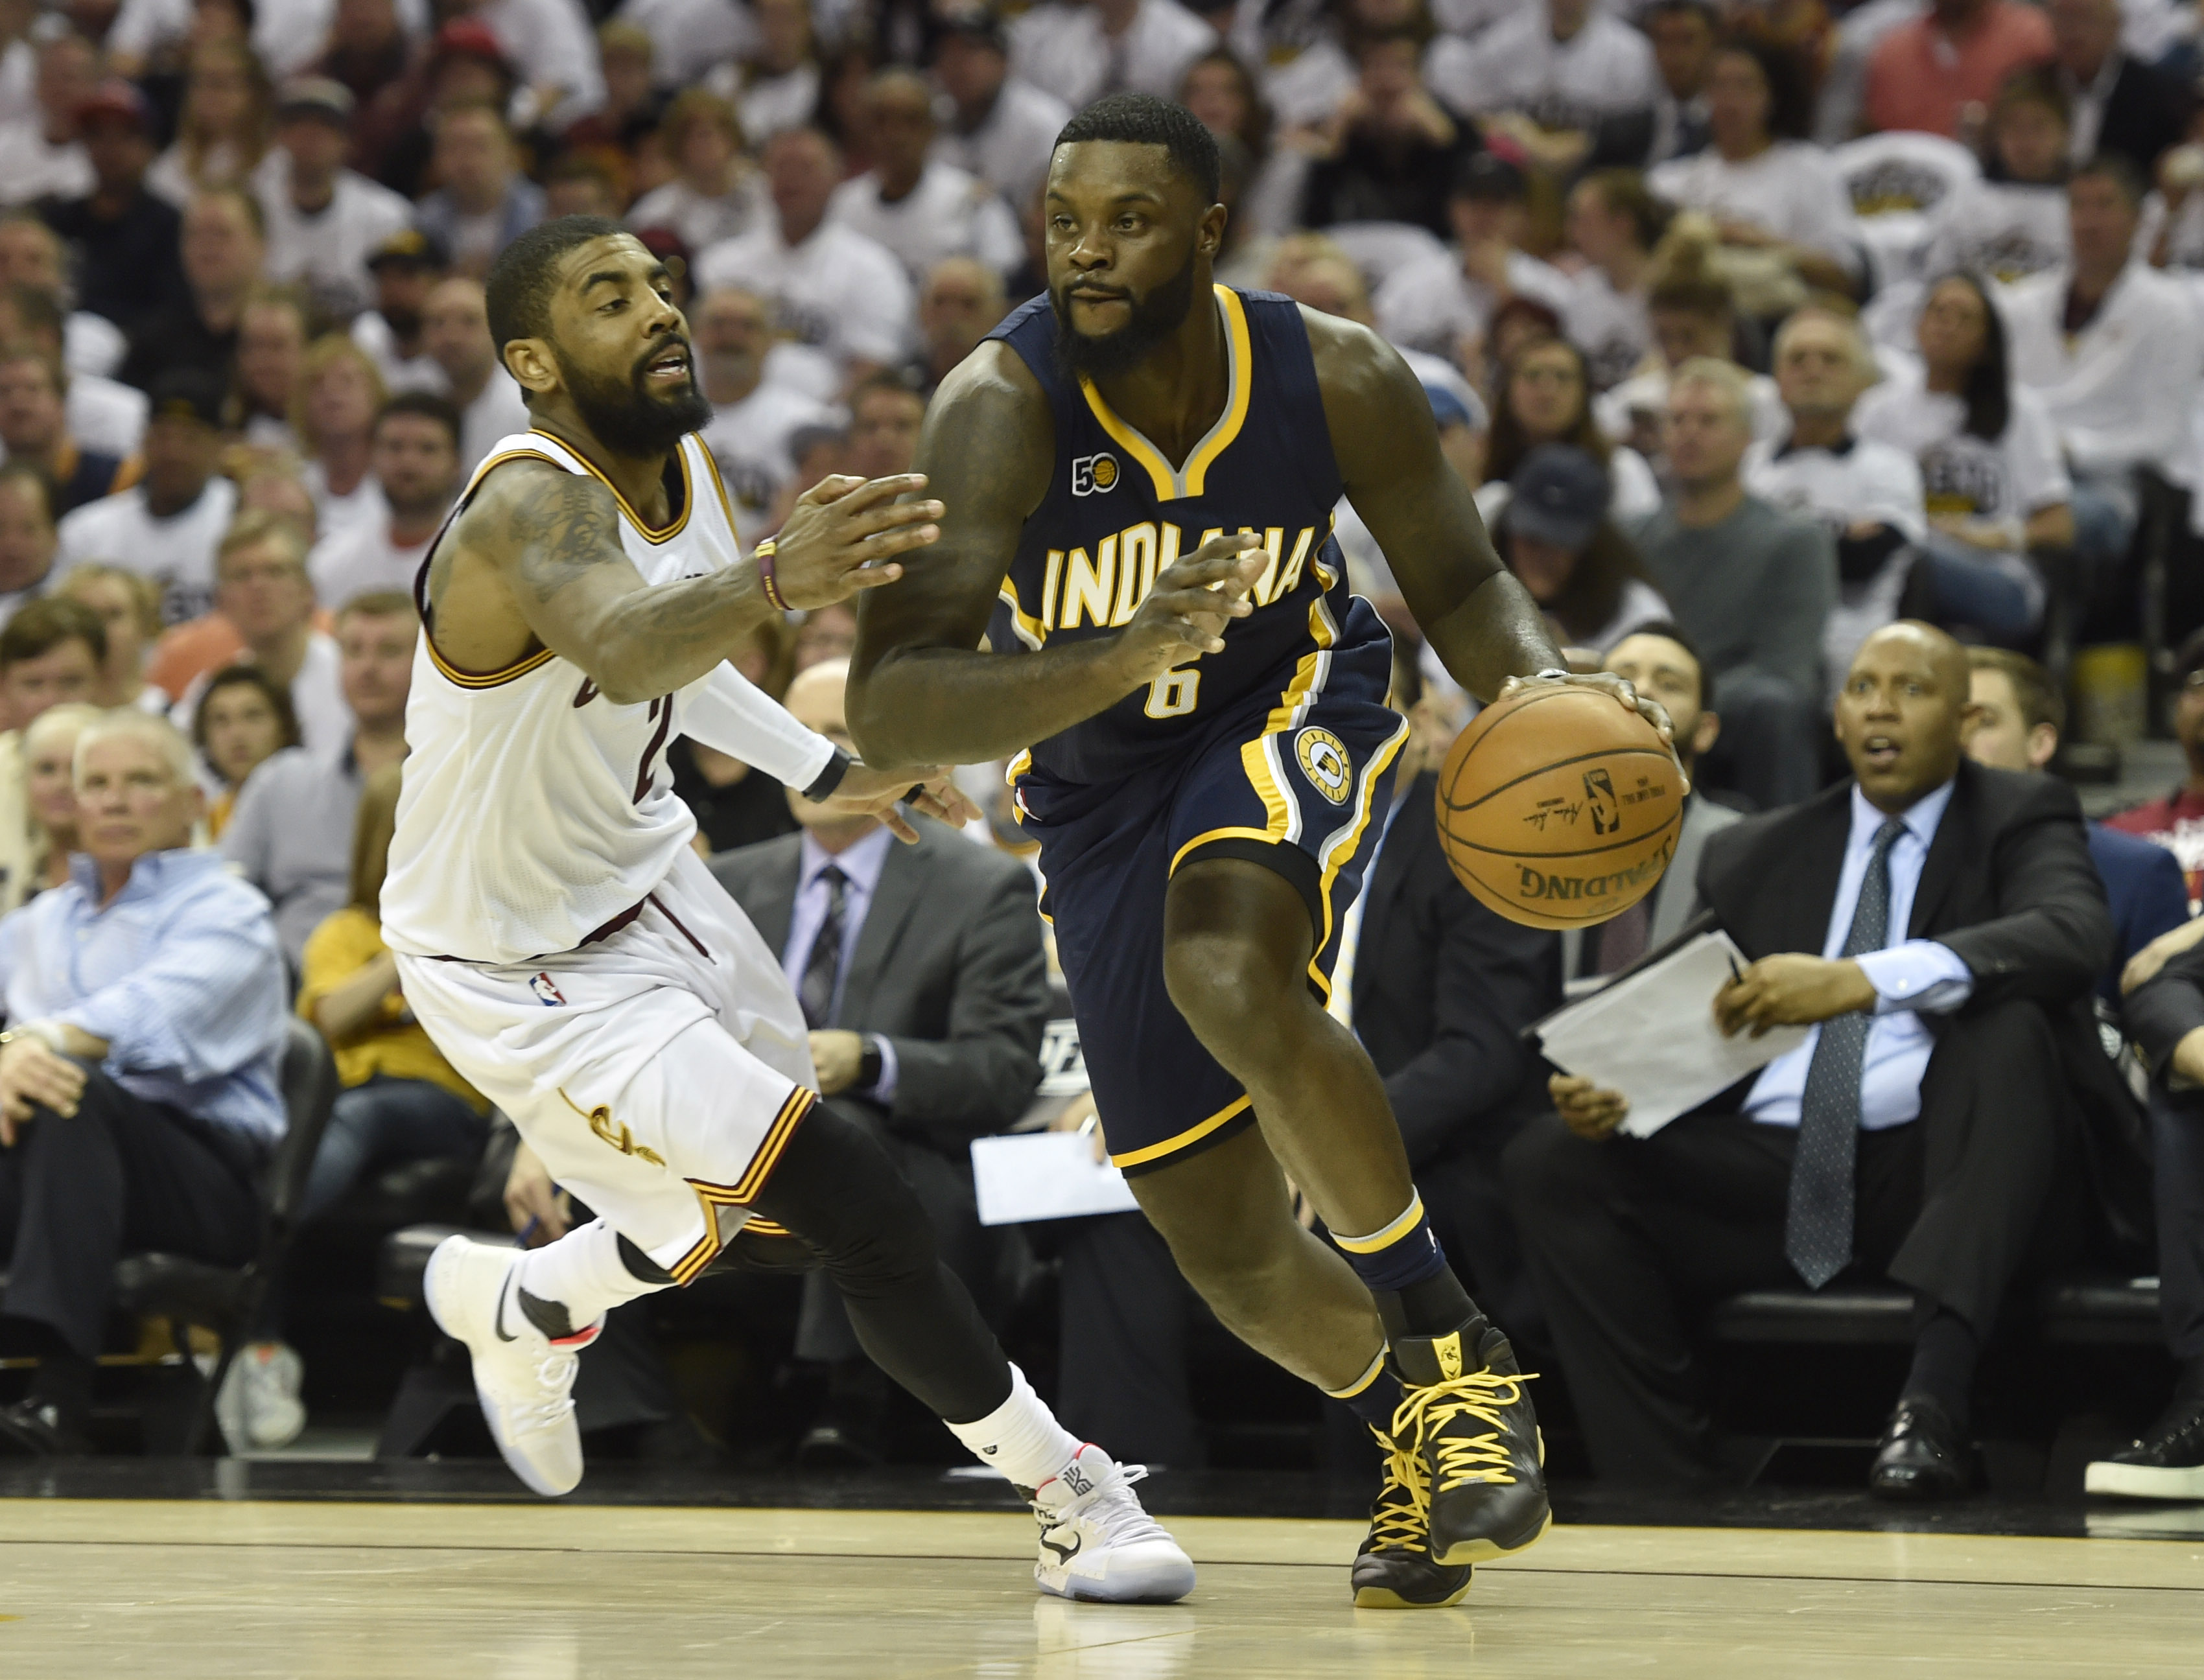 10013774-nba-playoffs-indiana-pacers-at-cleveland-cavaliers-1